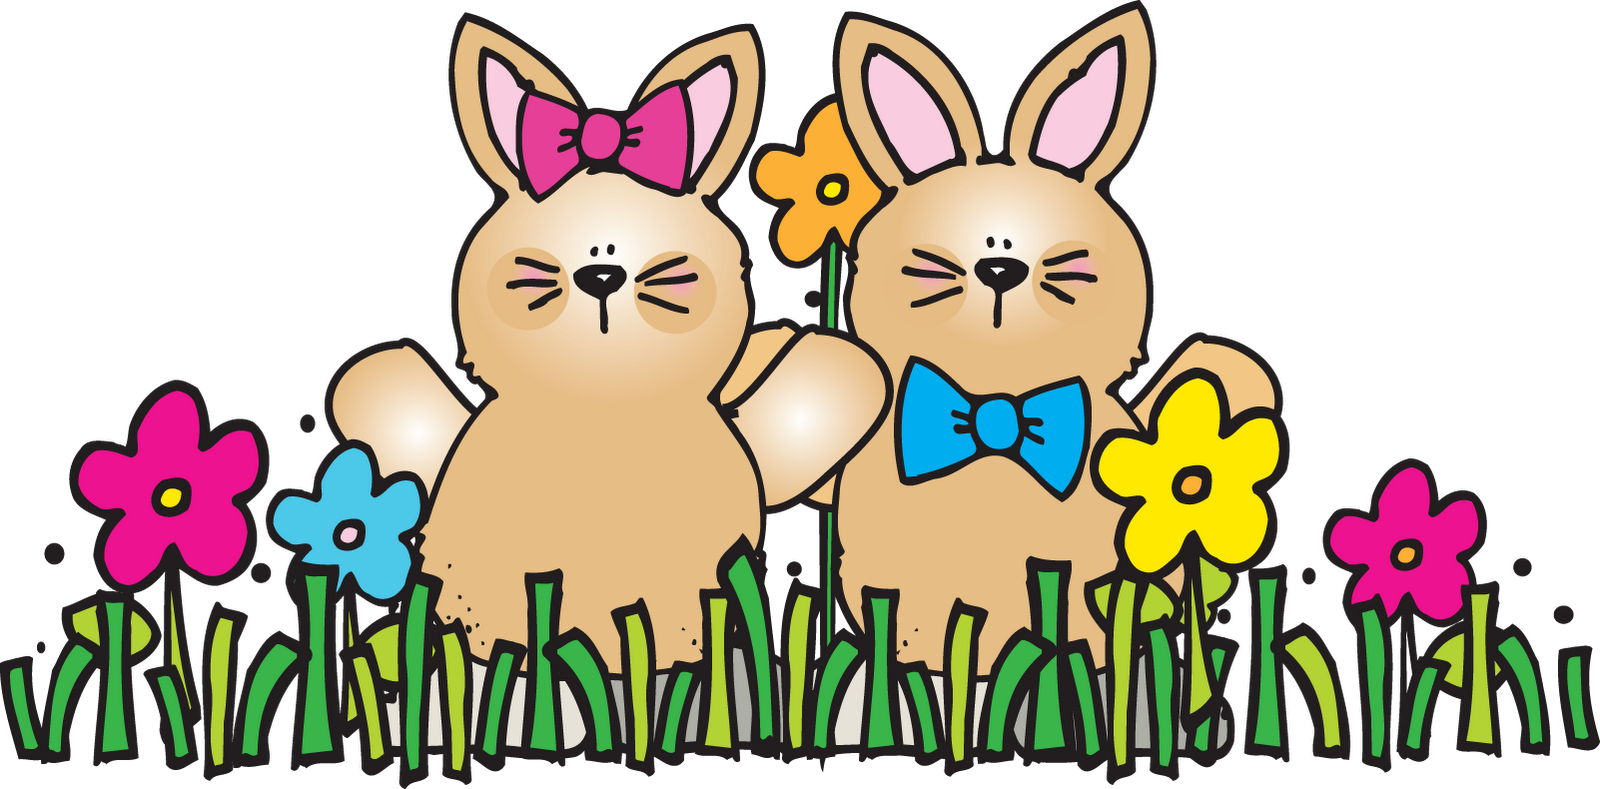 February animal clipart png free Clipart March & March Clip Art Images - ClipartALL.com png free